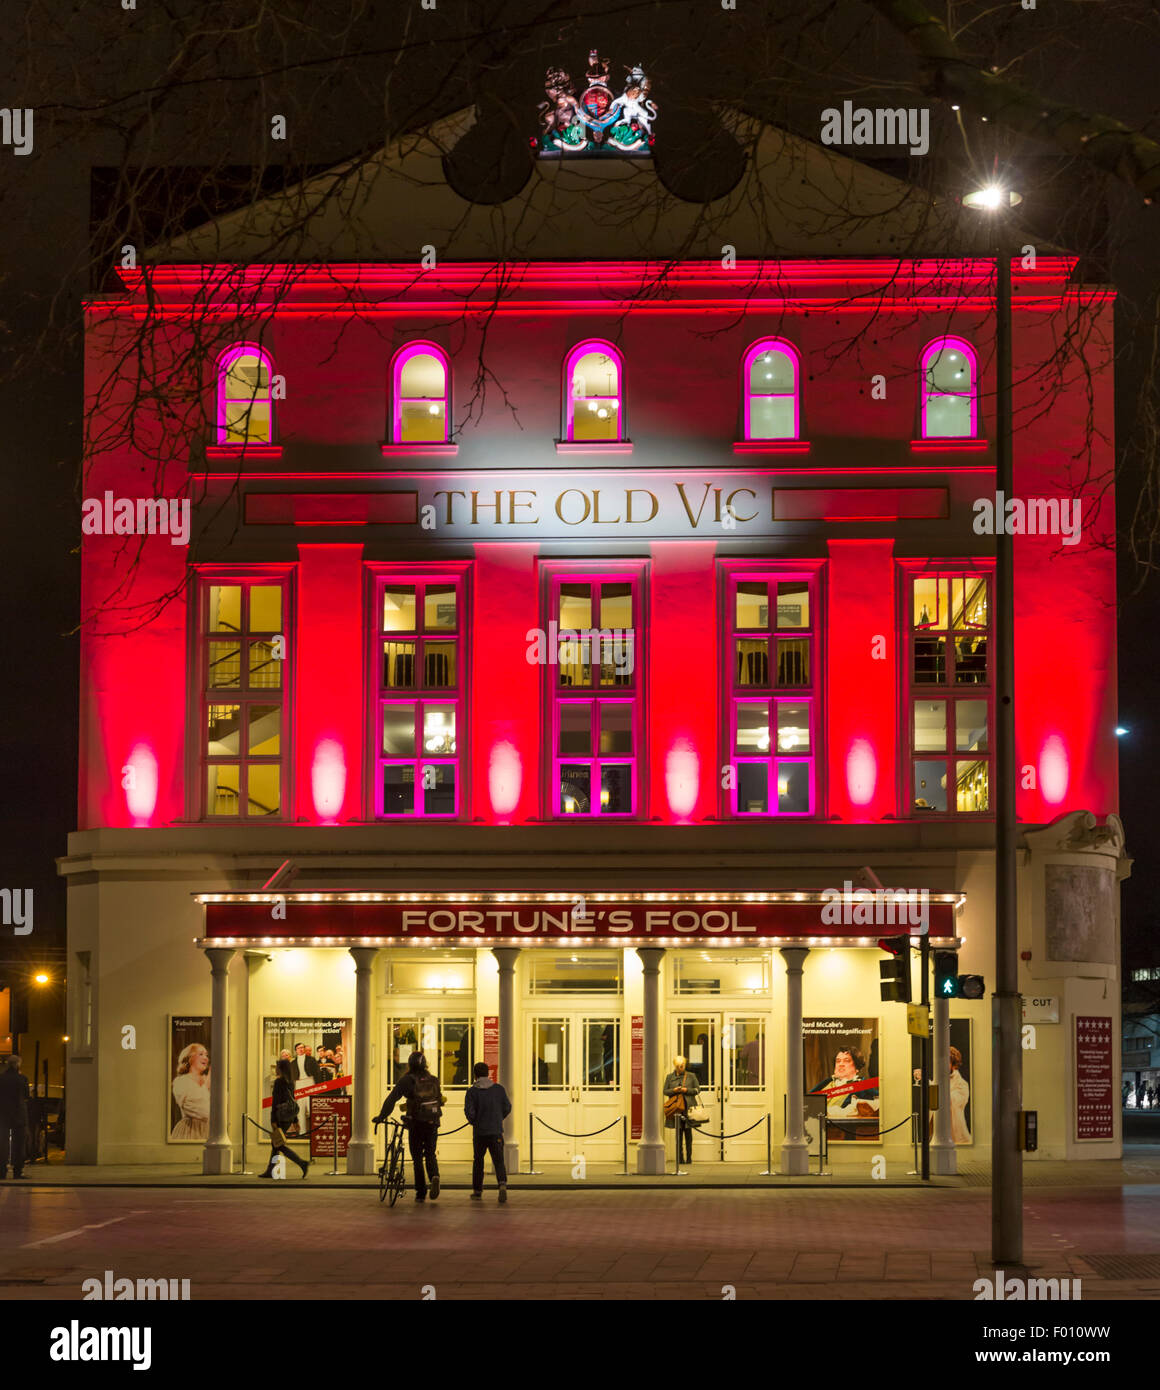 Night view of The Old Vic theatre in The Cut, London, England, UK - Stock Image